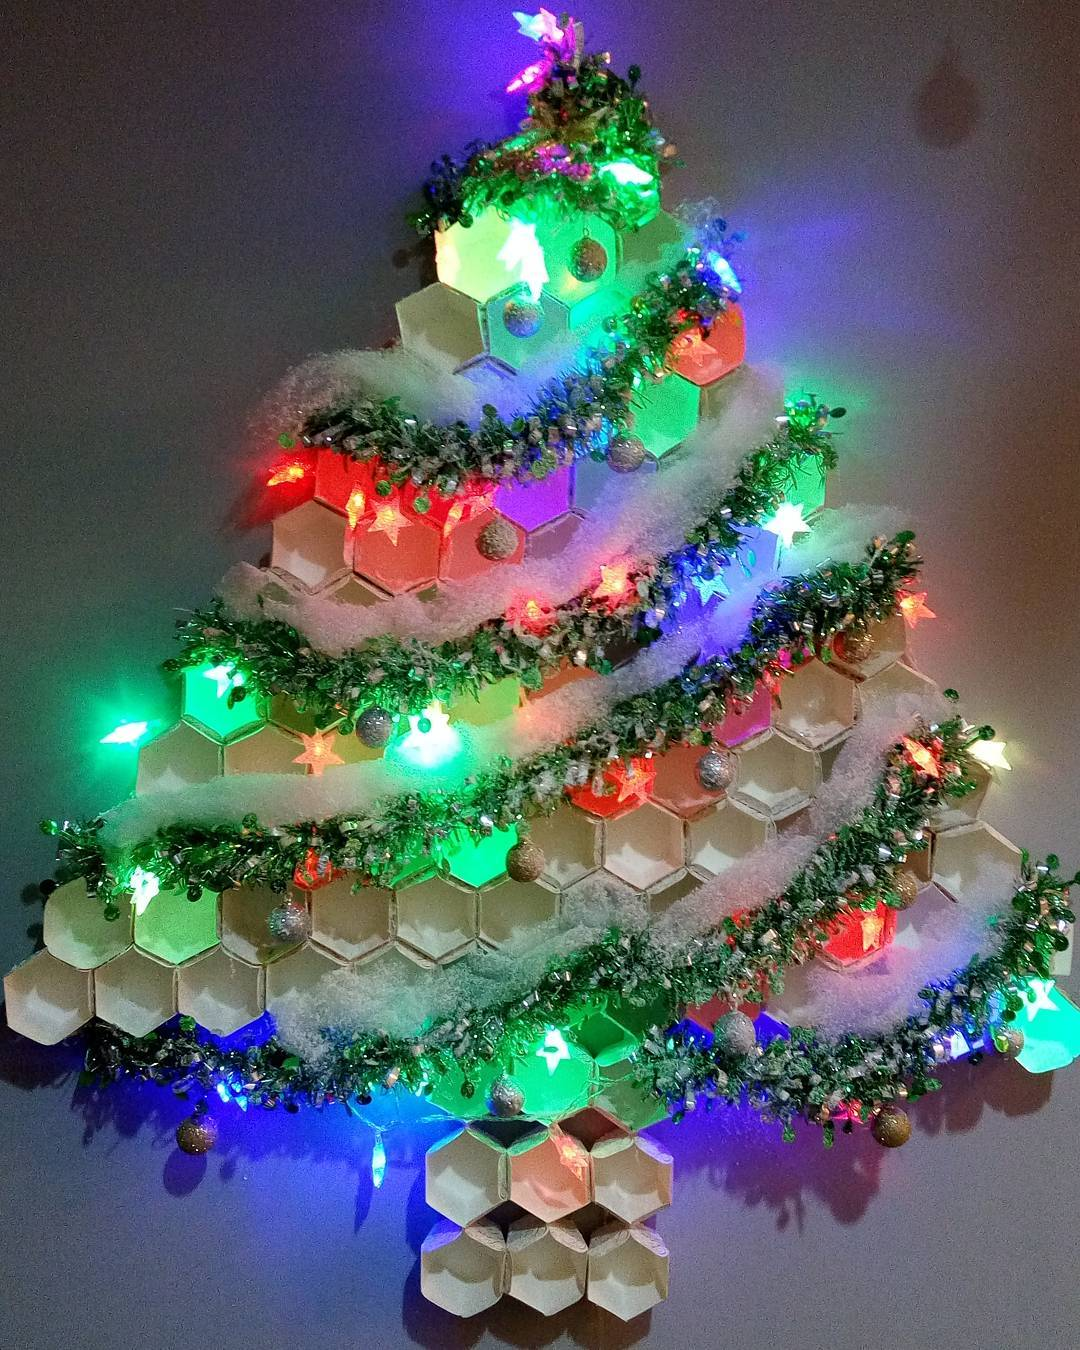 Creative Cup Cake Alternative Christmas Tree Decorated With Lights And Ornaments